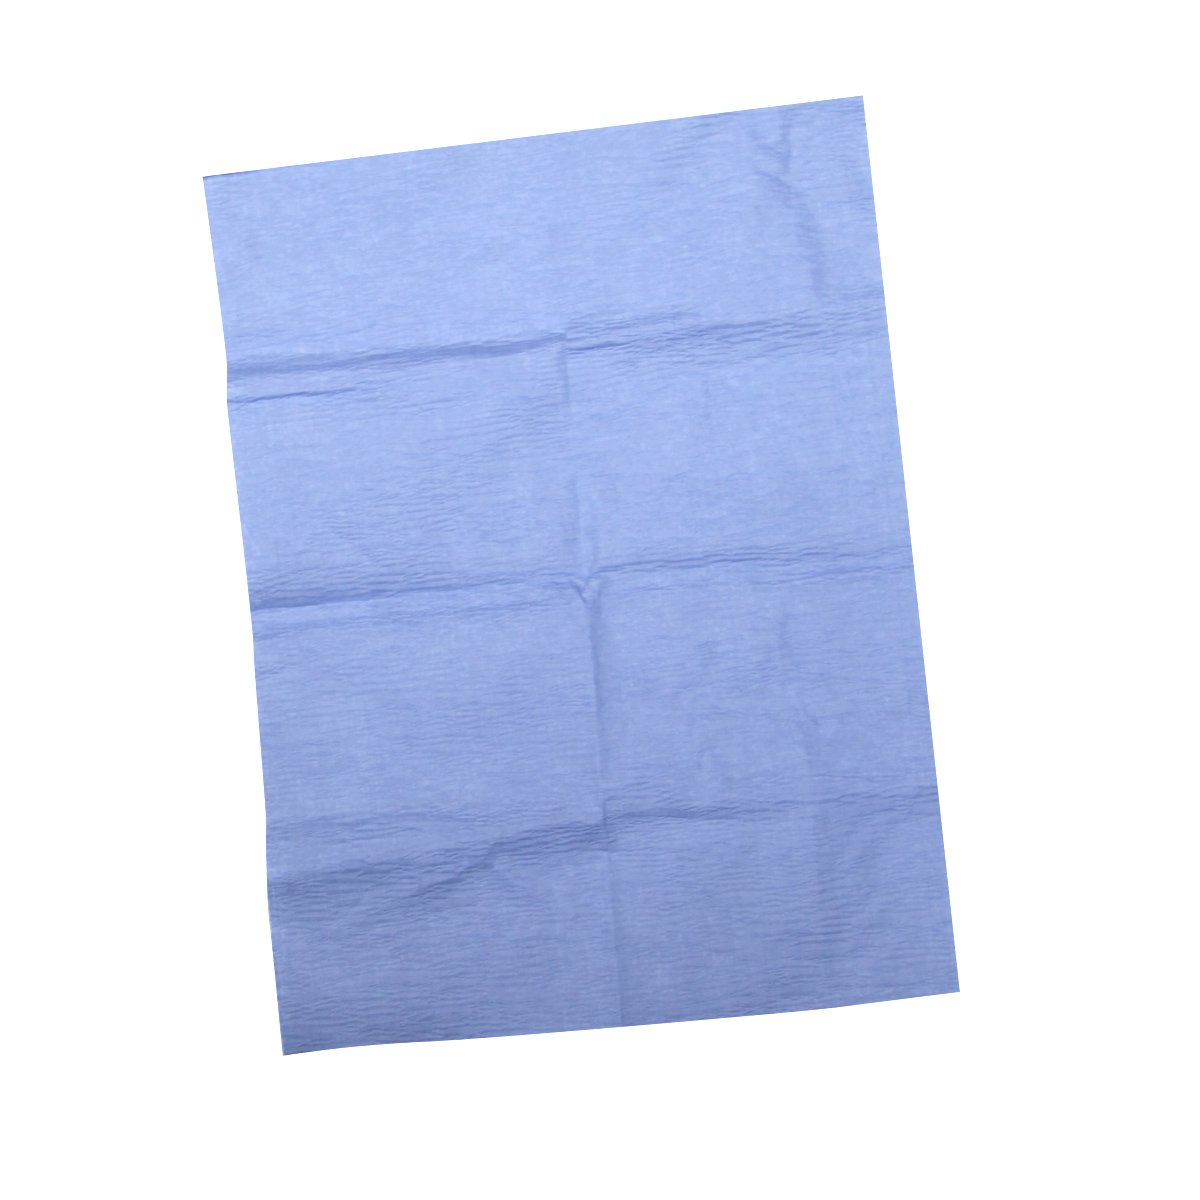 Trimaco 12-Inch by 16-1/2-Inch One Tuff Wiping Cloth, Dispenser Box of 75, 84075